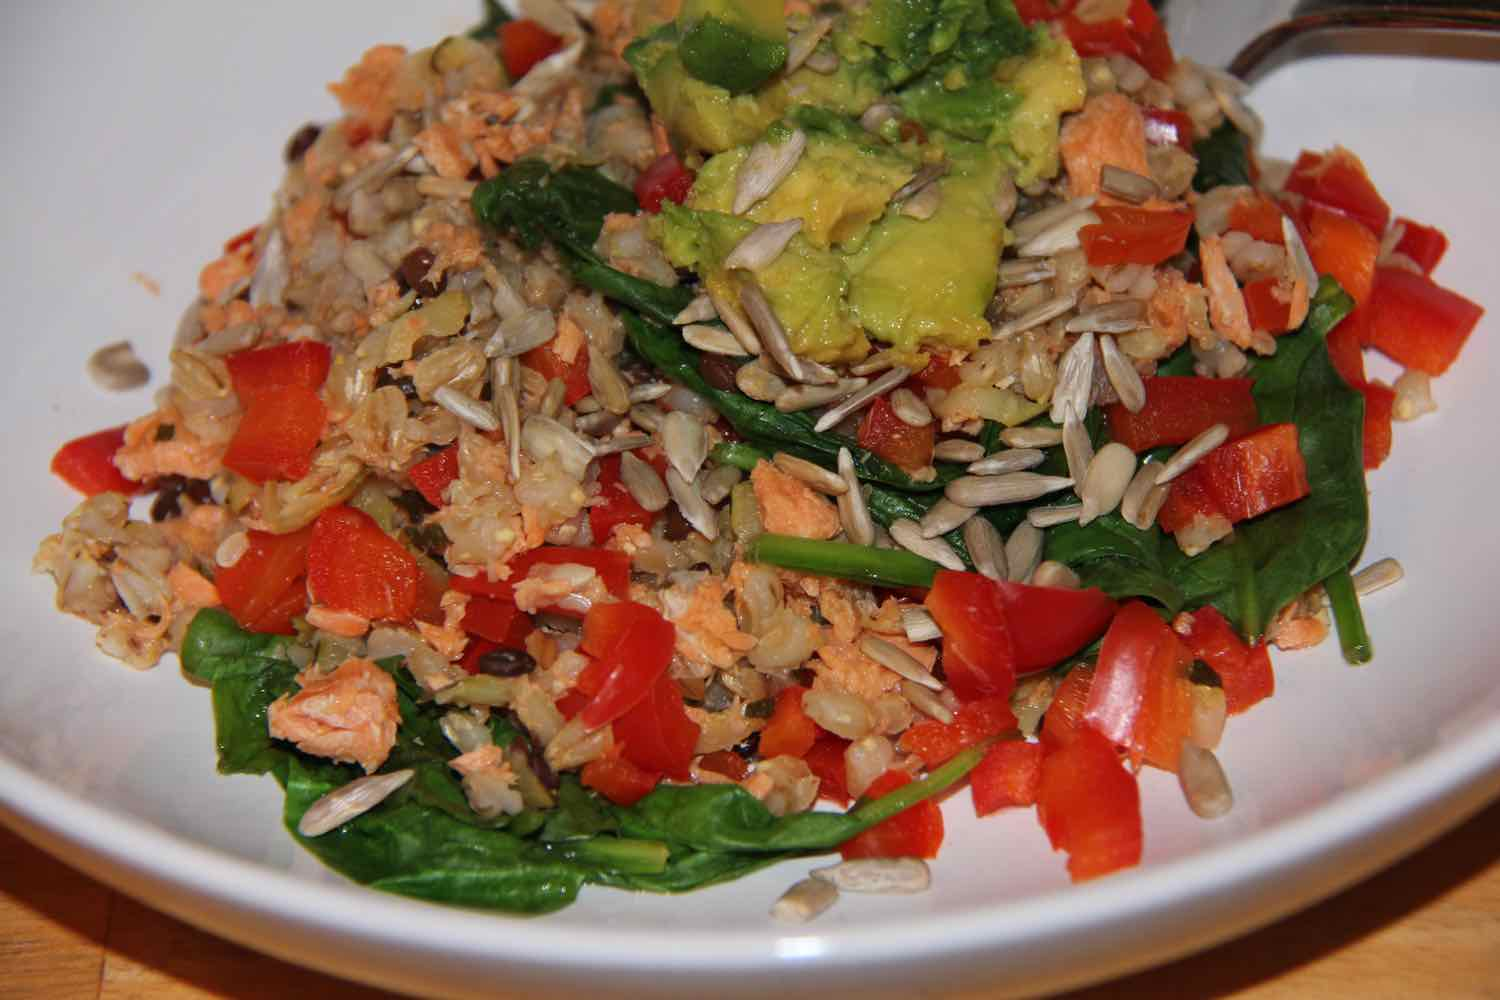 Tinned salmon turned into a quick, healthy dinner